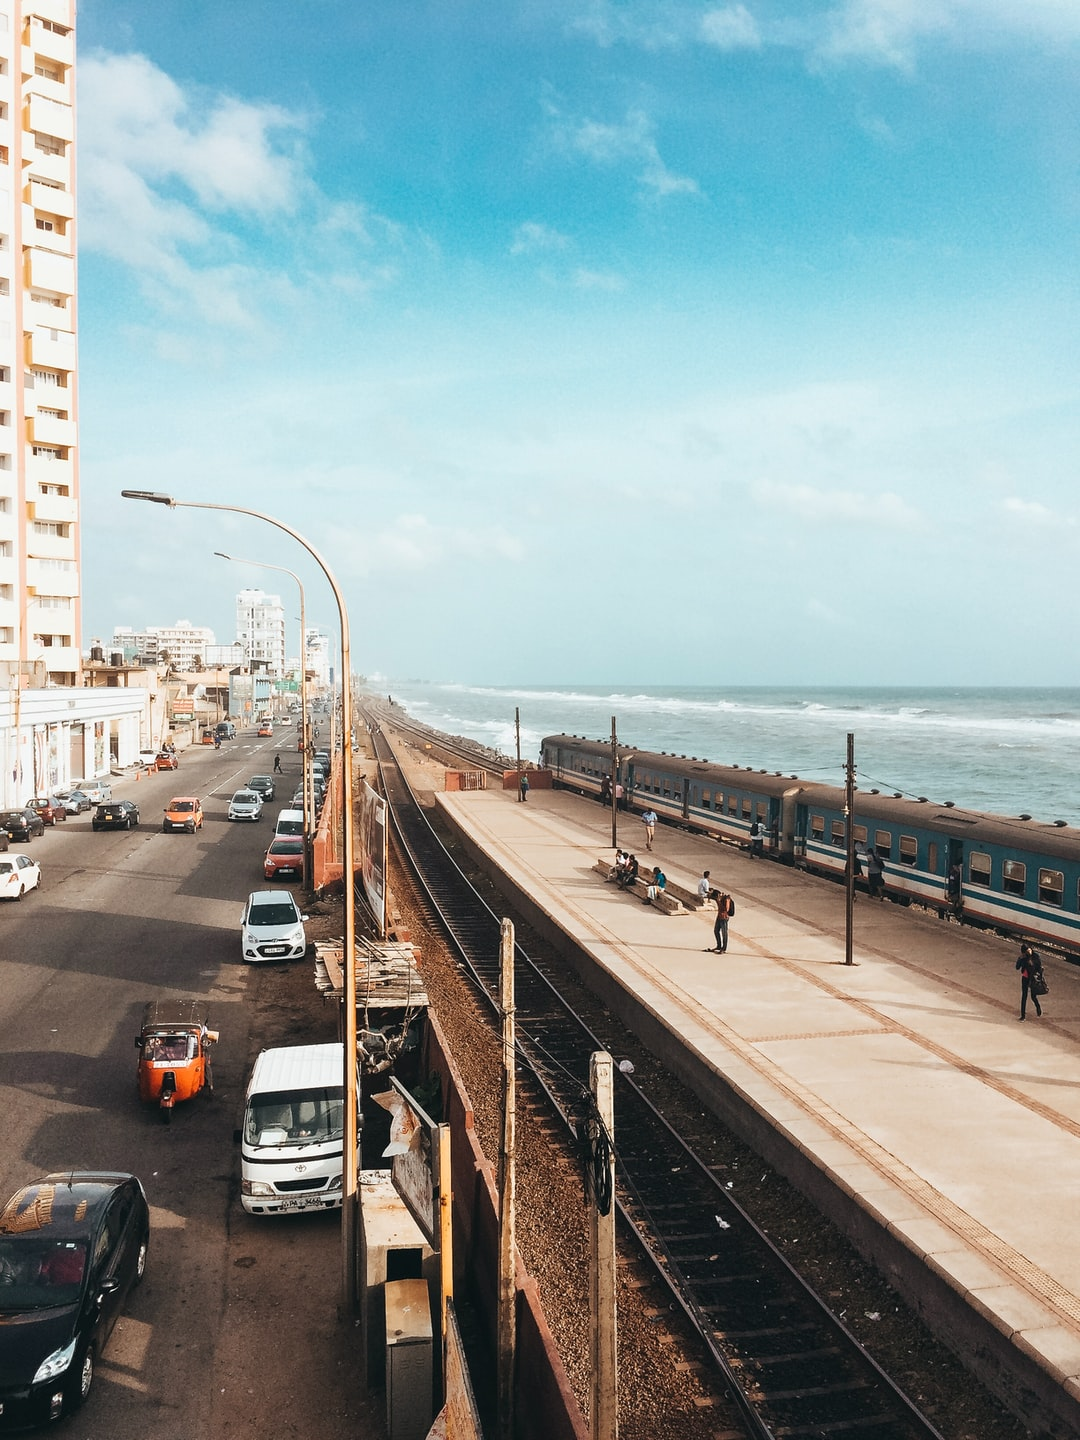 A photo of Marine Drive, Colombo. A train track lies between the sea and a road. Cars and a train drive by while people sit by the train tracks. The sky is light blue and the waves are calm.